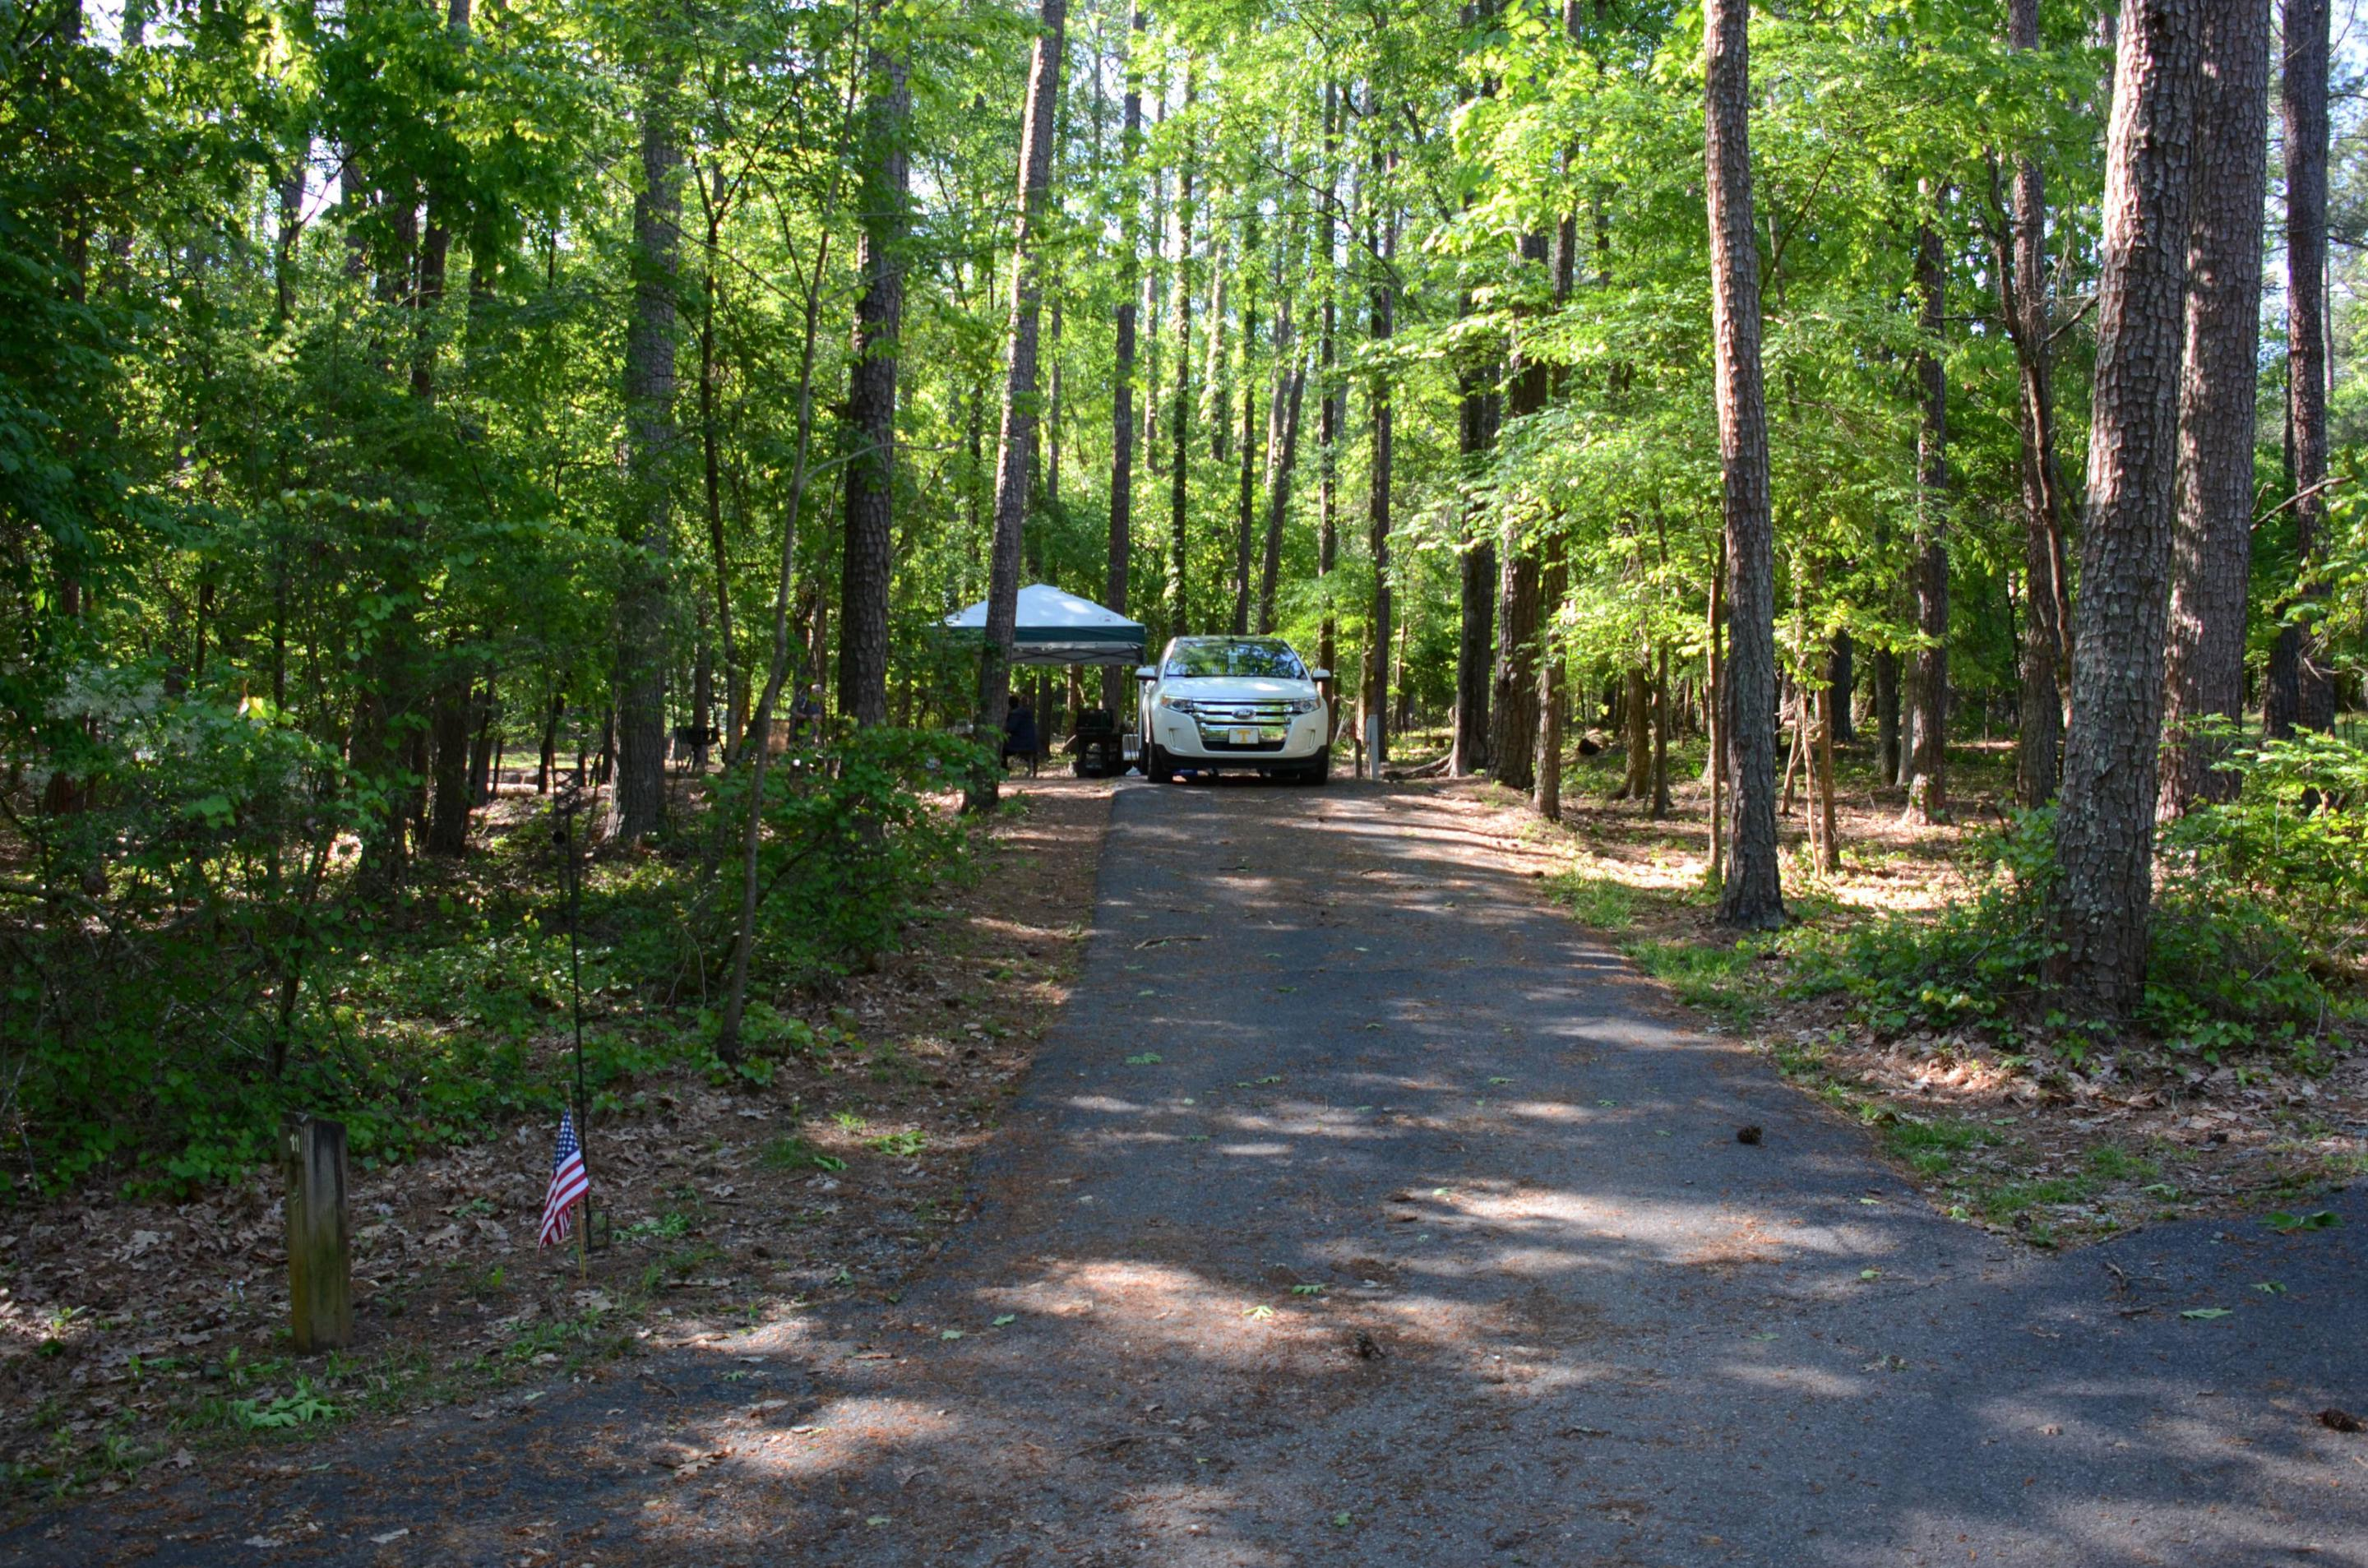 Driveway slope, awning-side clearance.McKinney Campground, campsite 11.